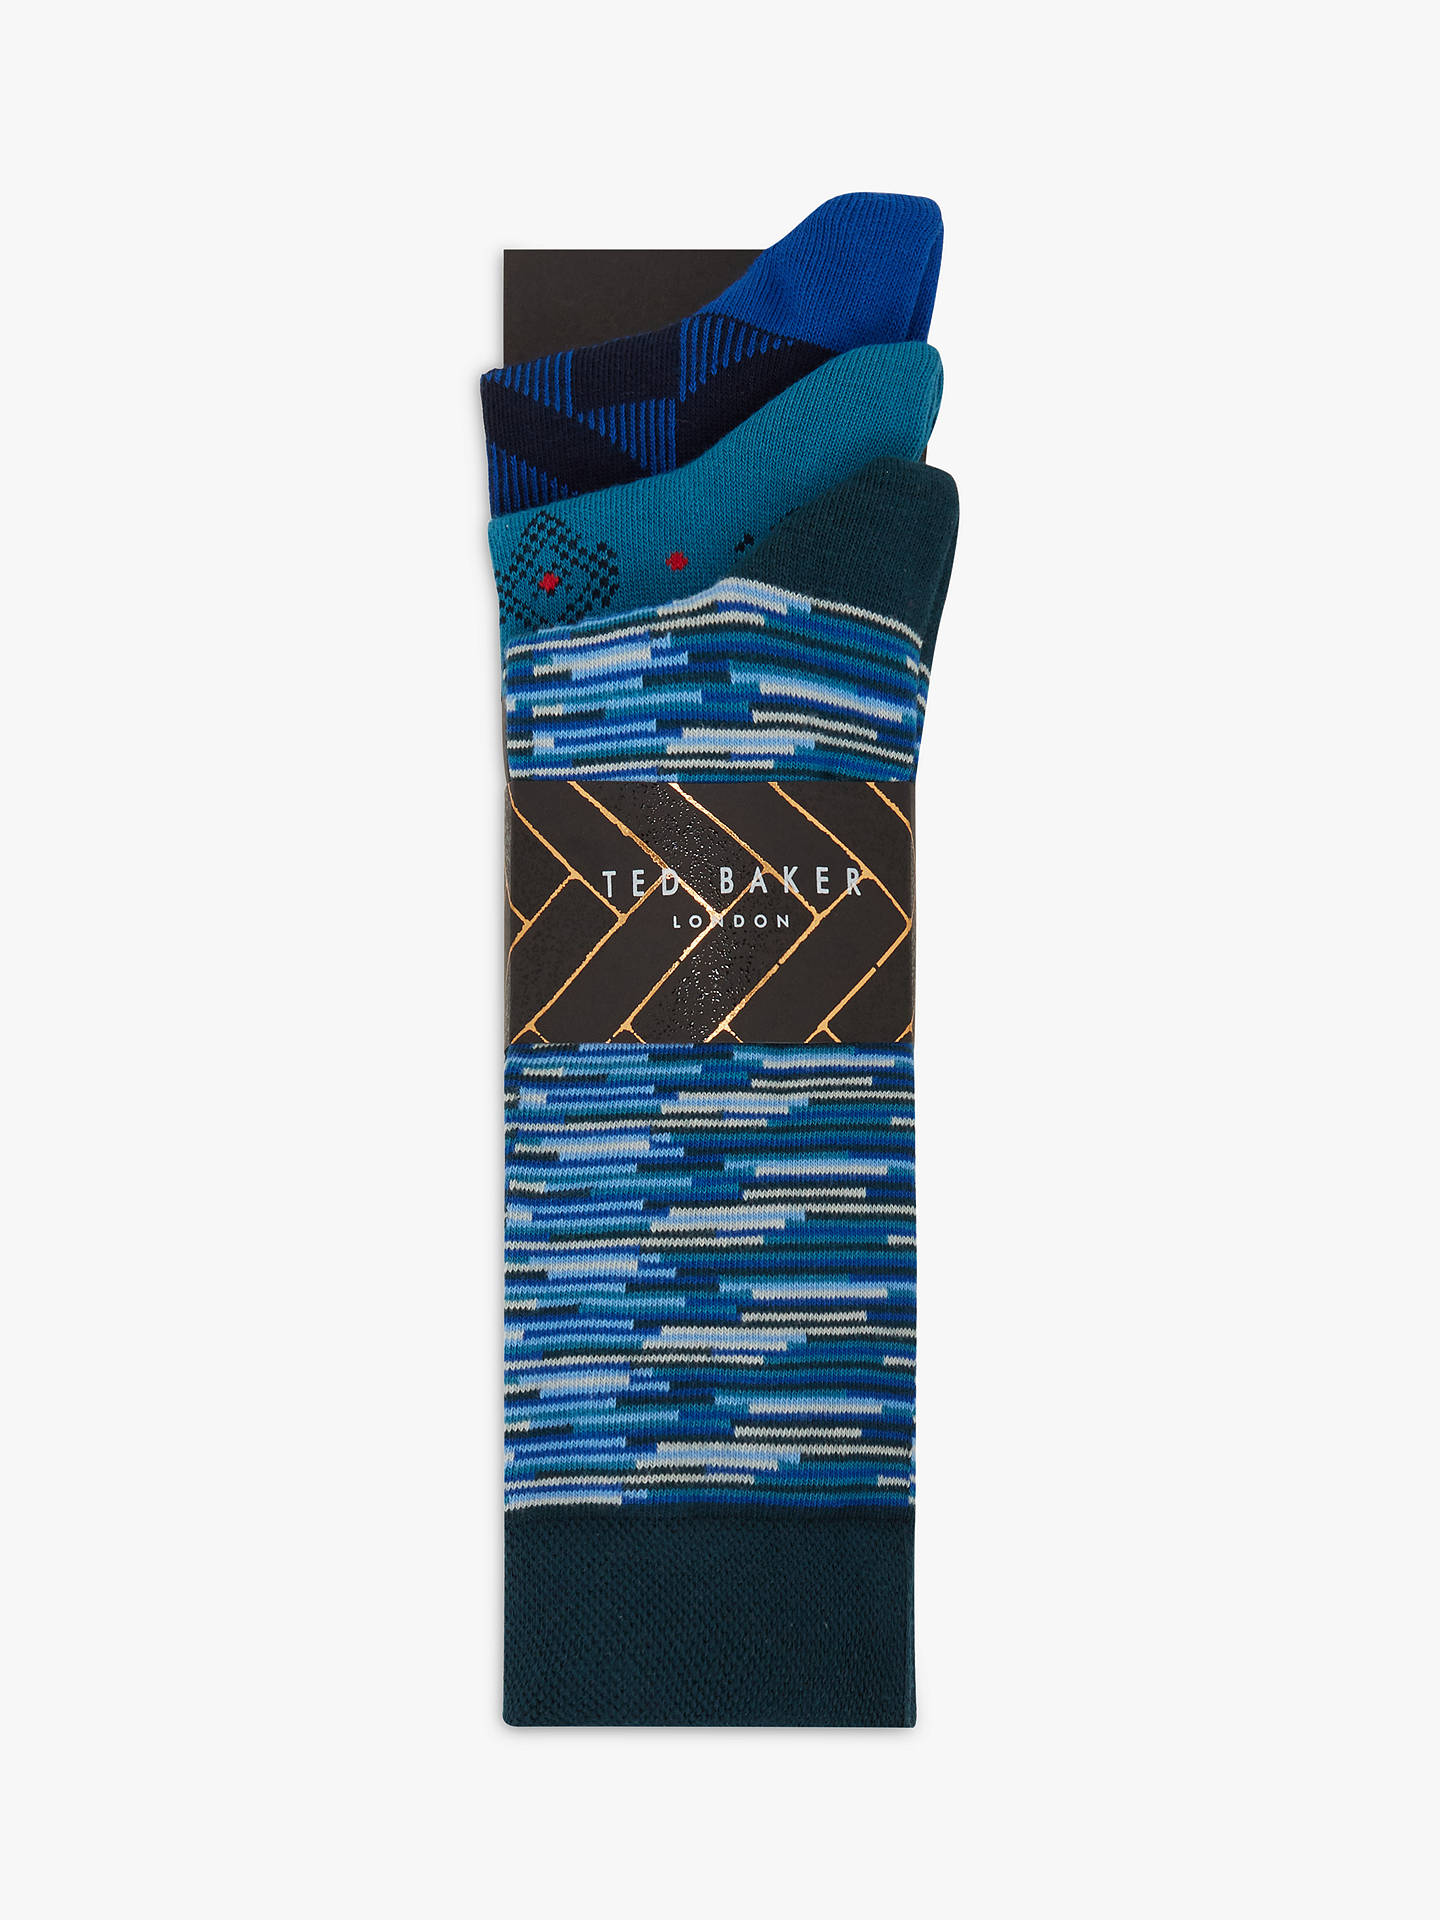 BuyTed Baker Trappe Geo Print Socks, Pack of 3, One Size, Multi Online at johnlewis.com